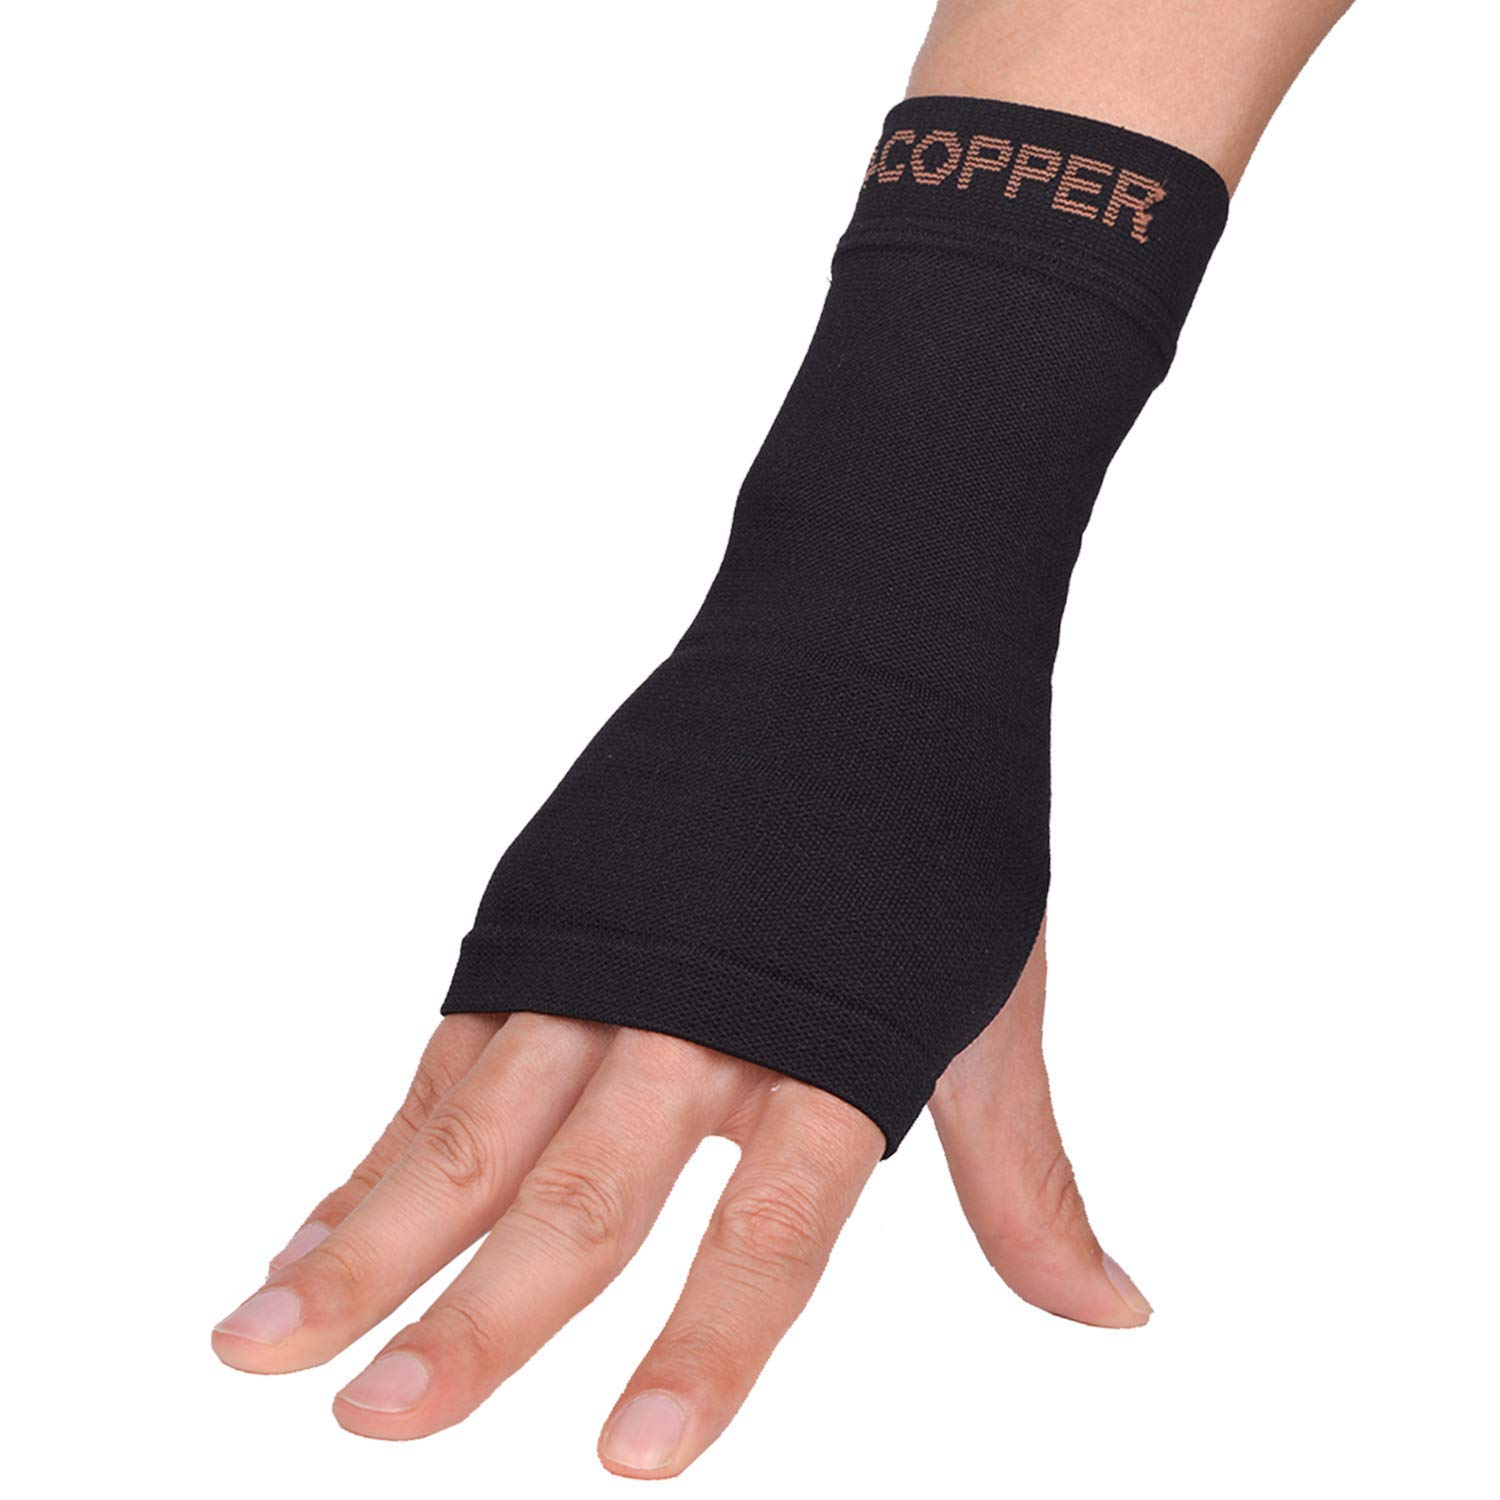 bcf183c1b9 Get Quotations · New Thx4 Copper Wrist Support -Copper Infused Compression  Wrist Brace Sleeve-Relief for Carpal